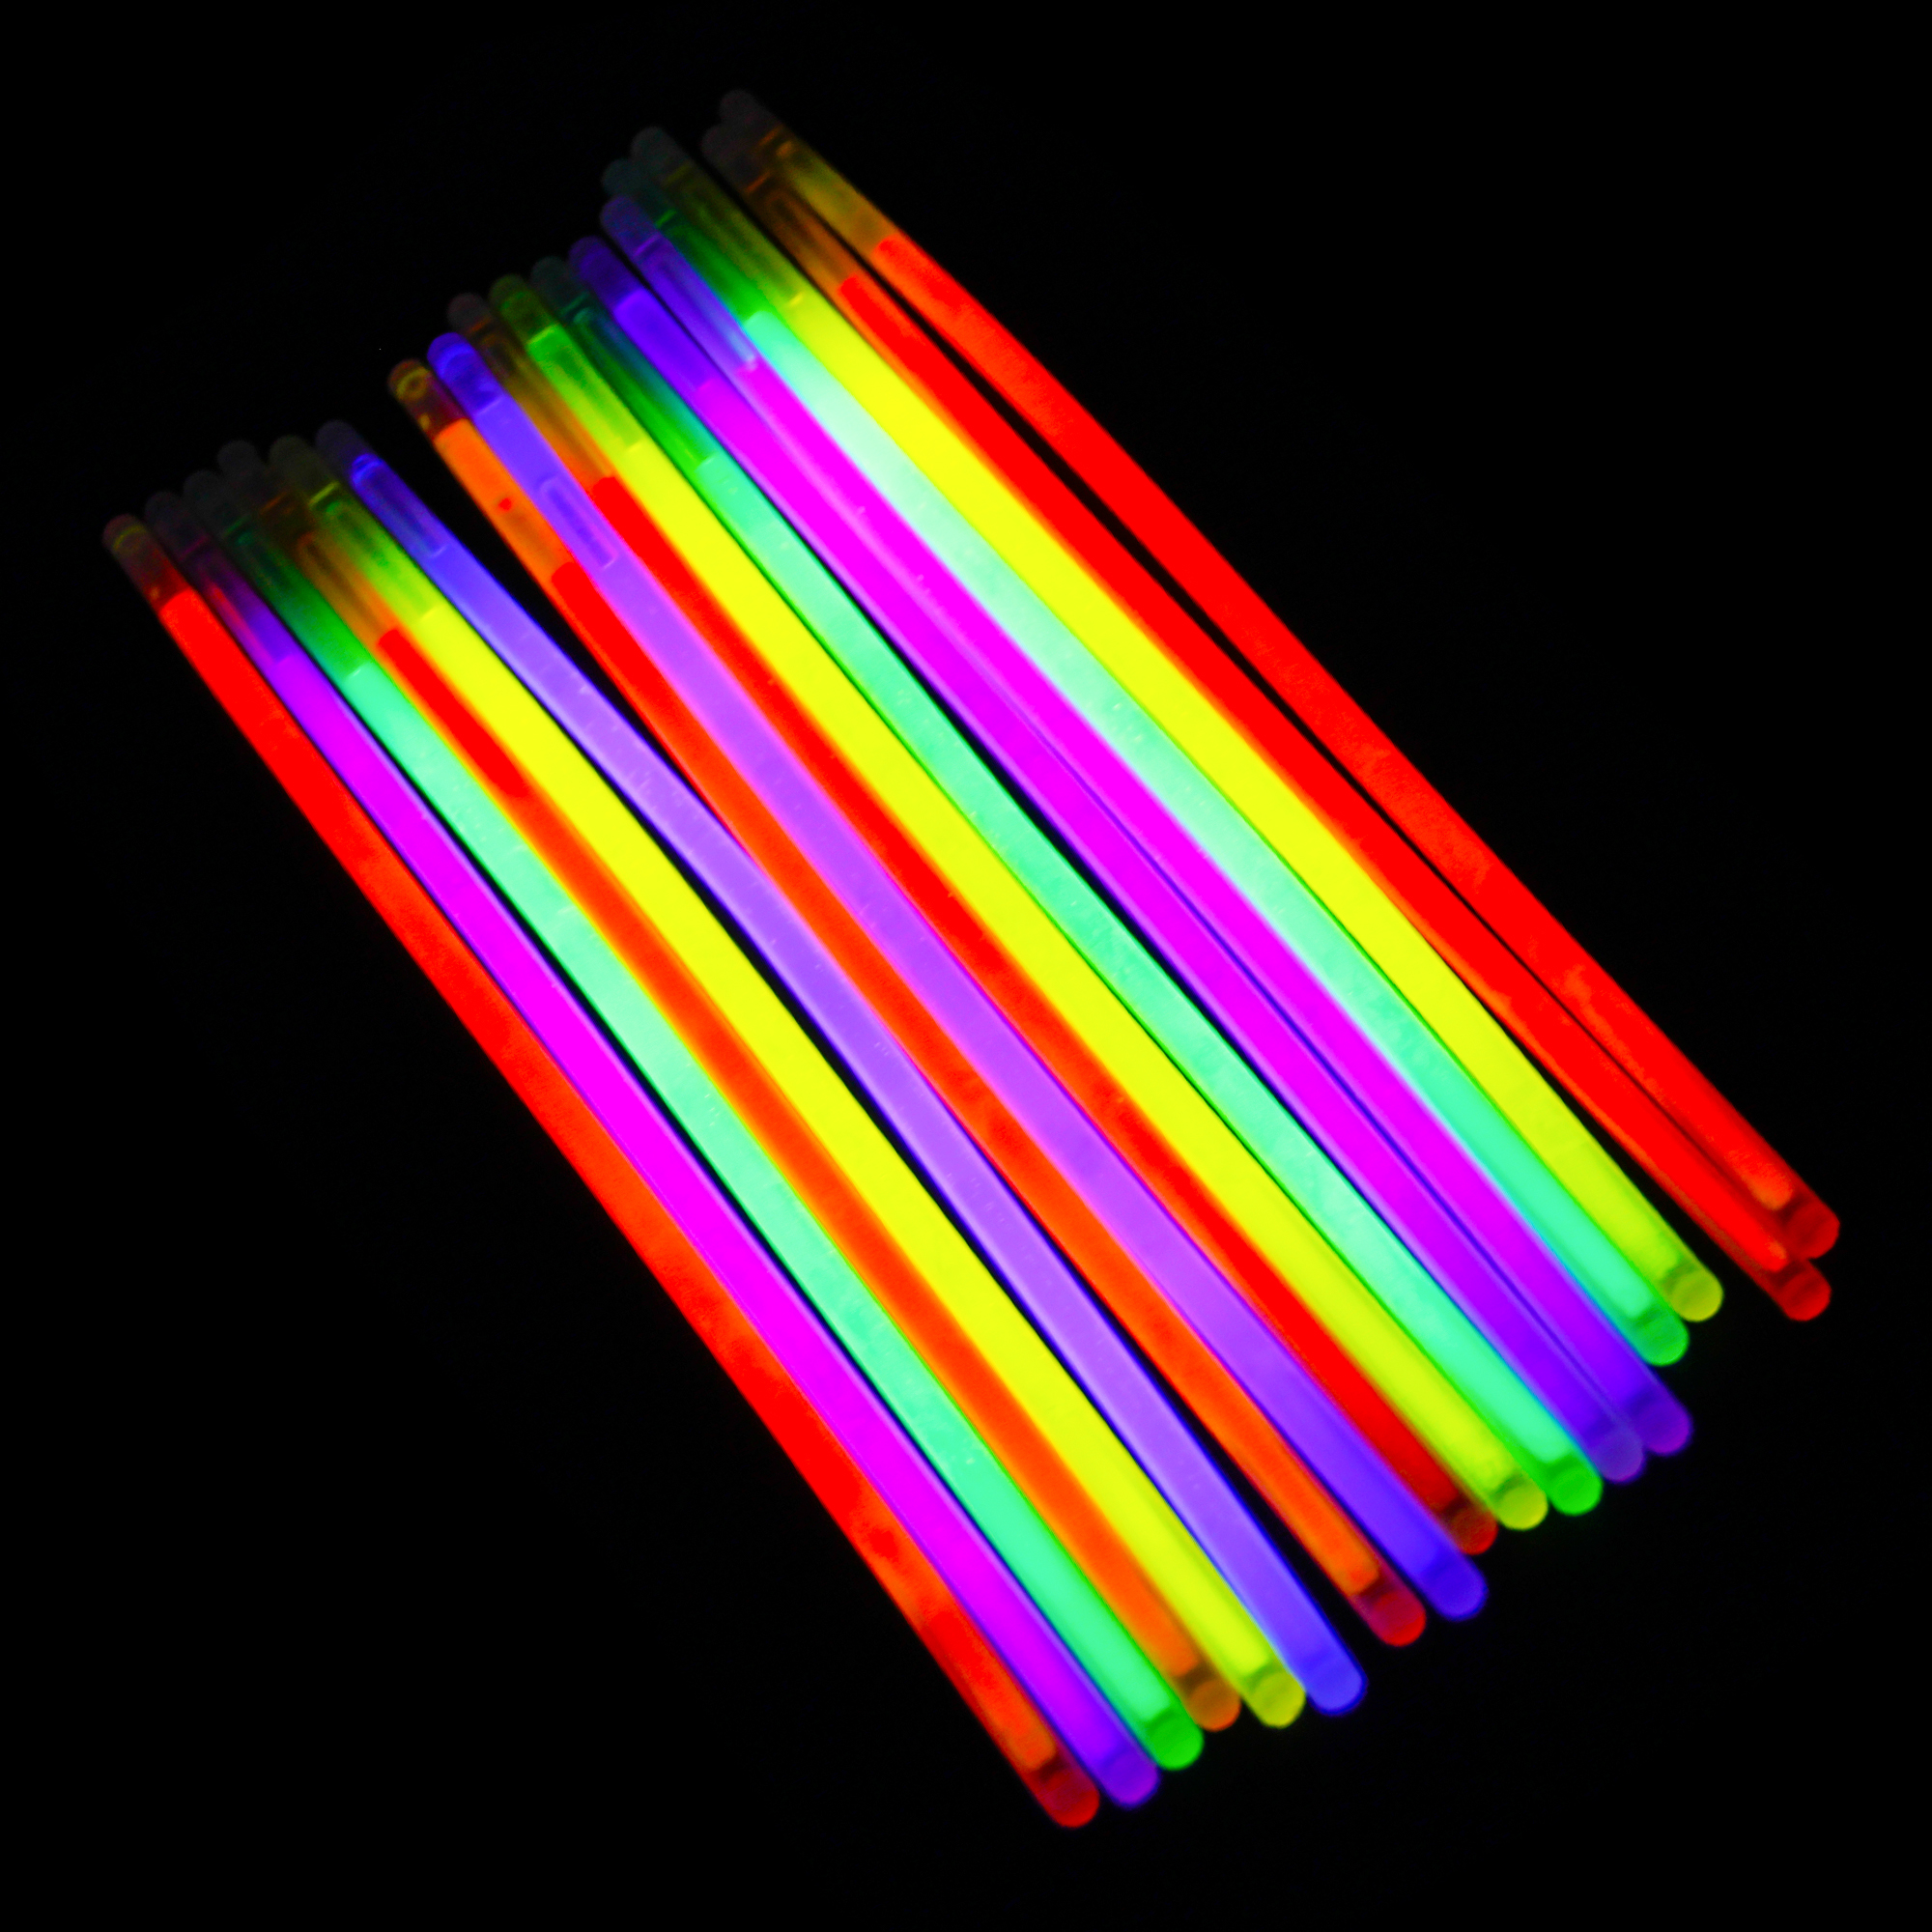 glow stick light up bracelet necklace 8in 9 colors premium. Black Bedroom Furniture Sets. Home Design Ideas